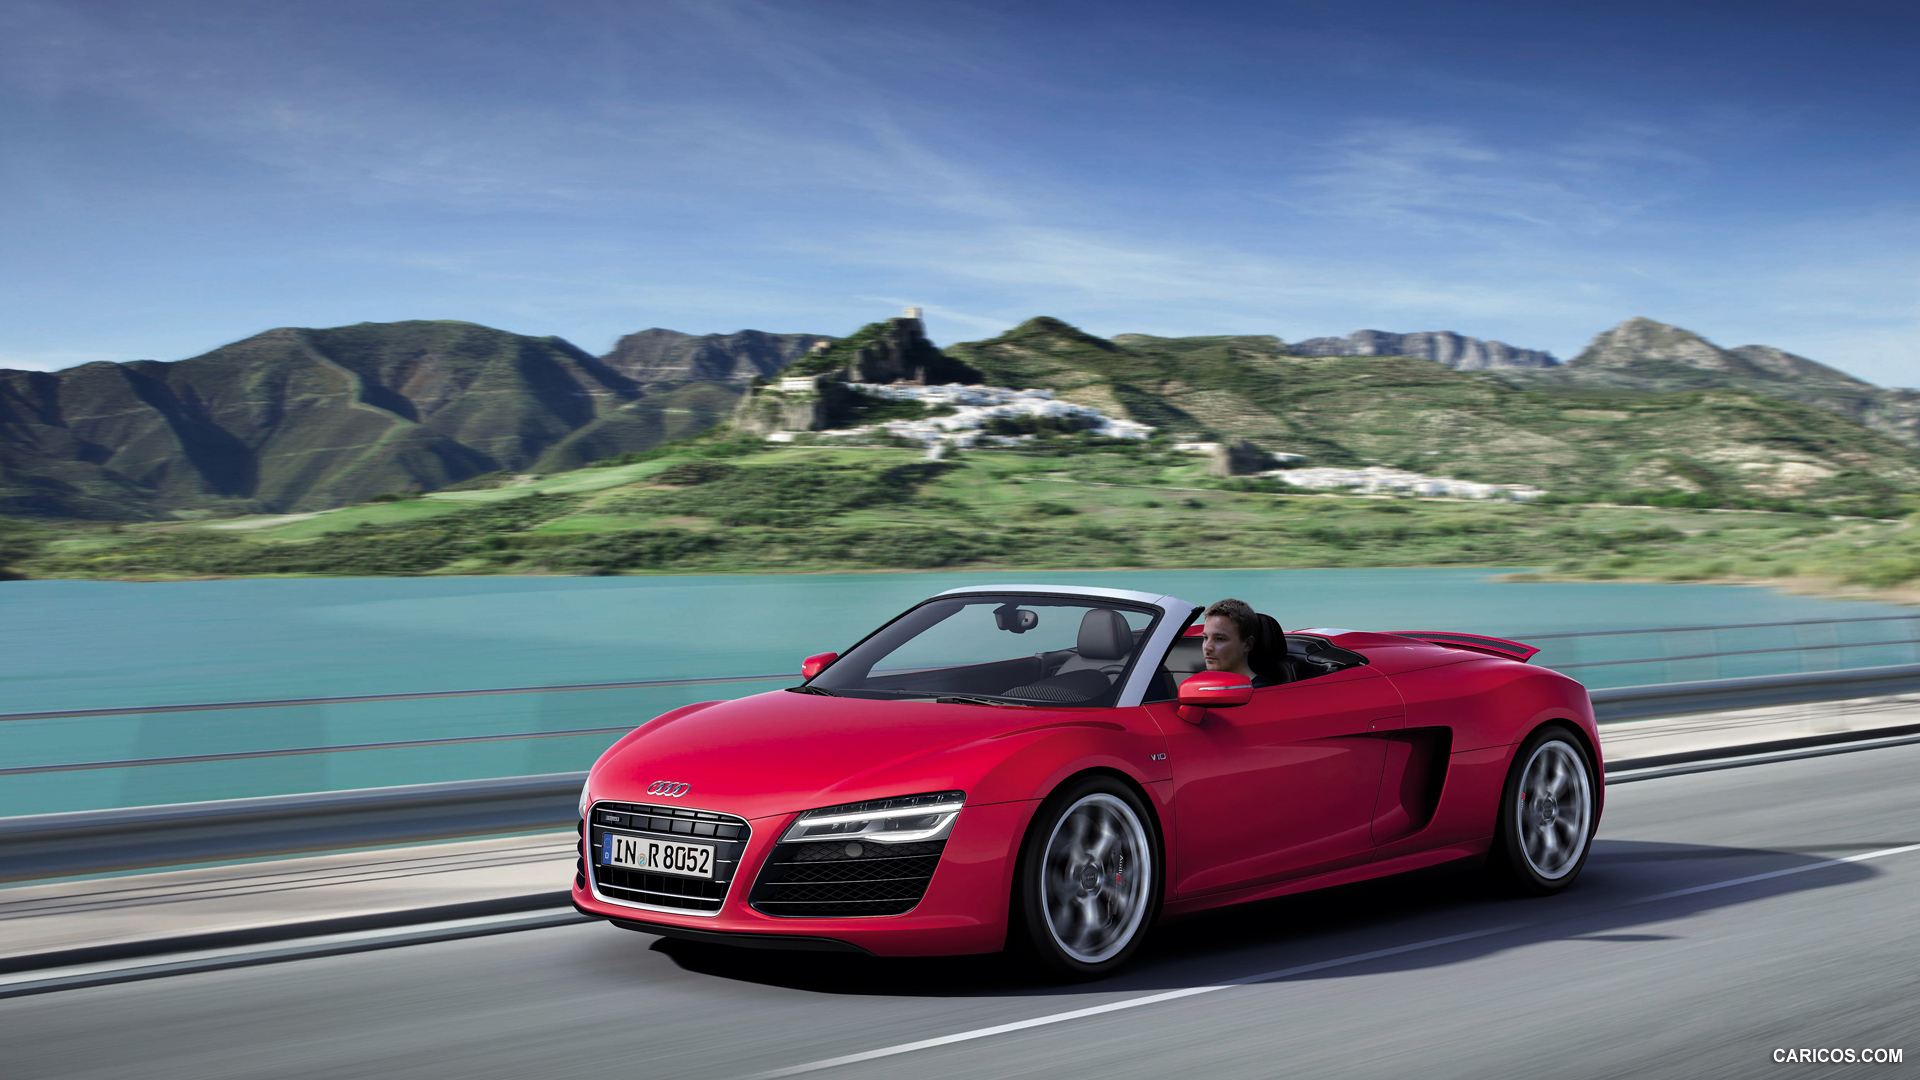 2013 Audi R8 Spyder V10   Front HD Wallpaper 6 1920x1080